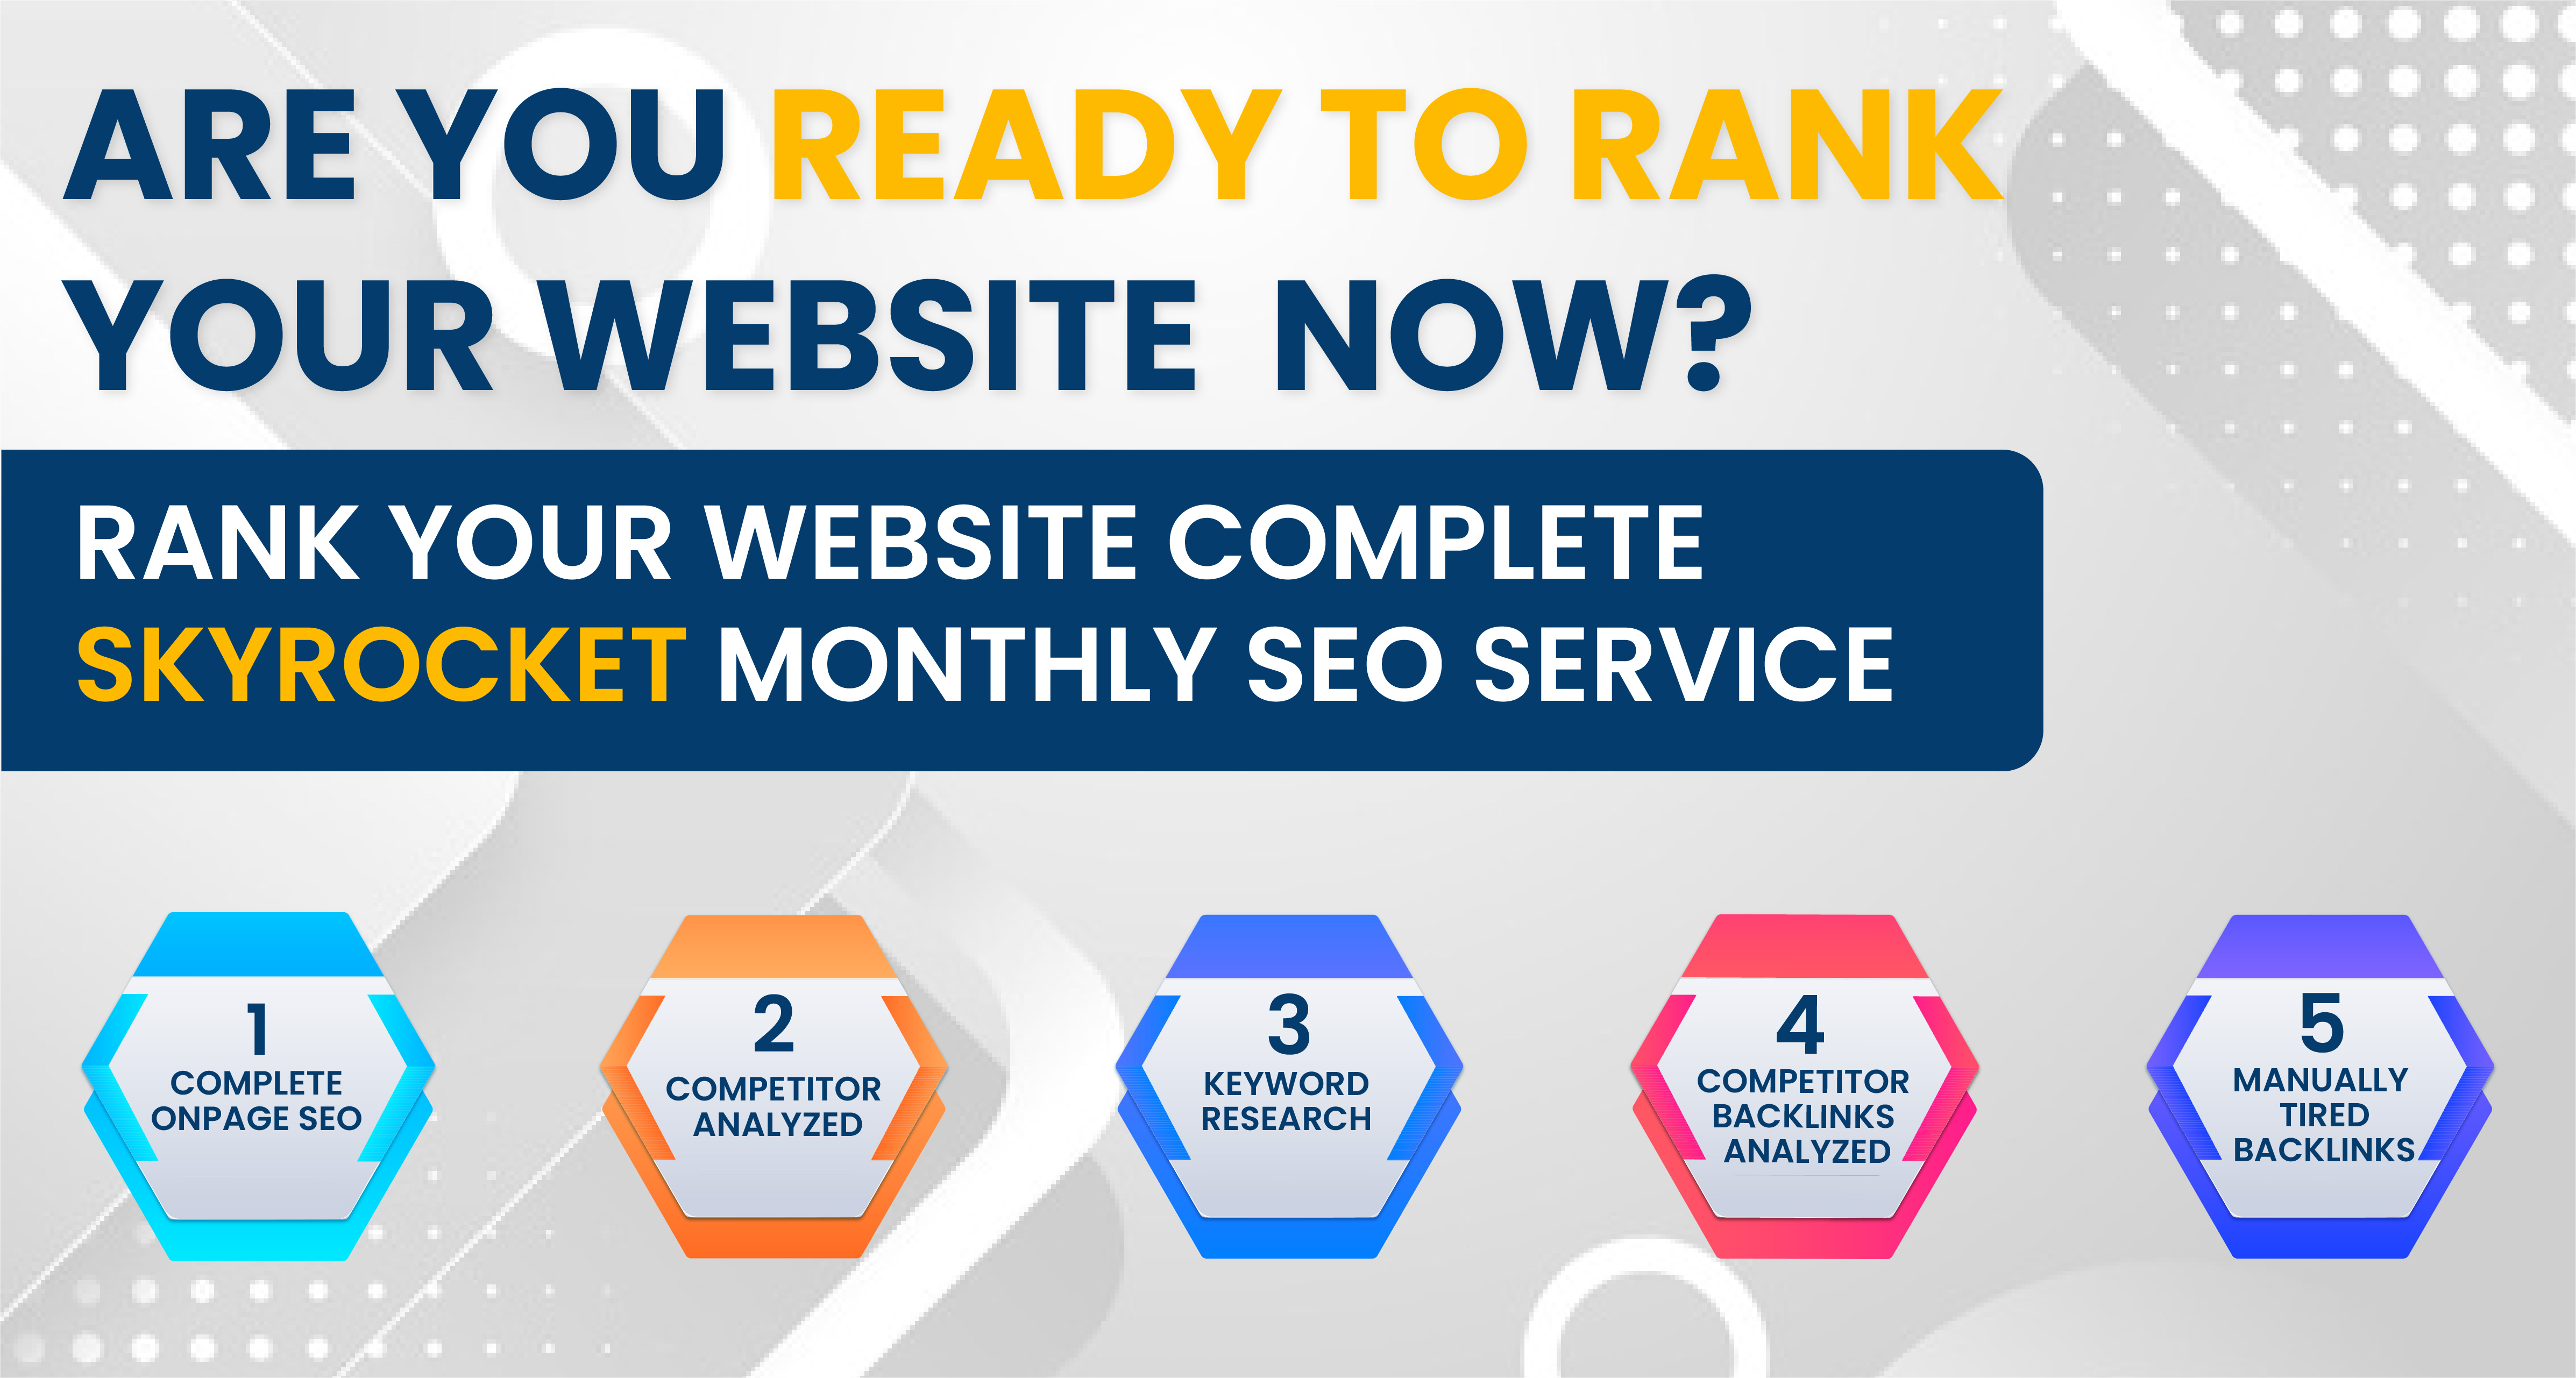 I will rank your site on first page in google complete SEO Service 30 Day Drip feed